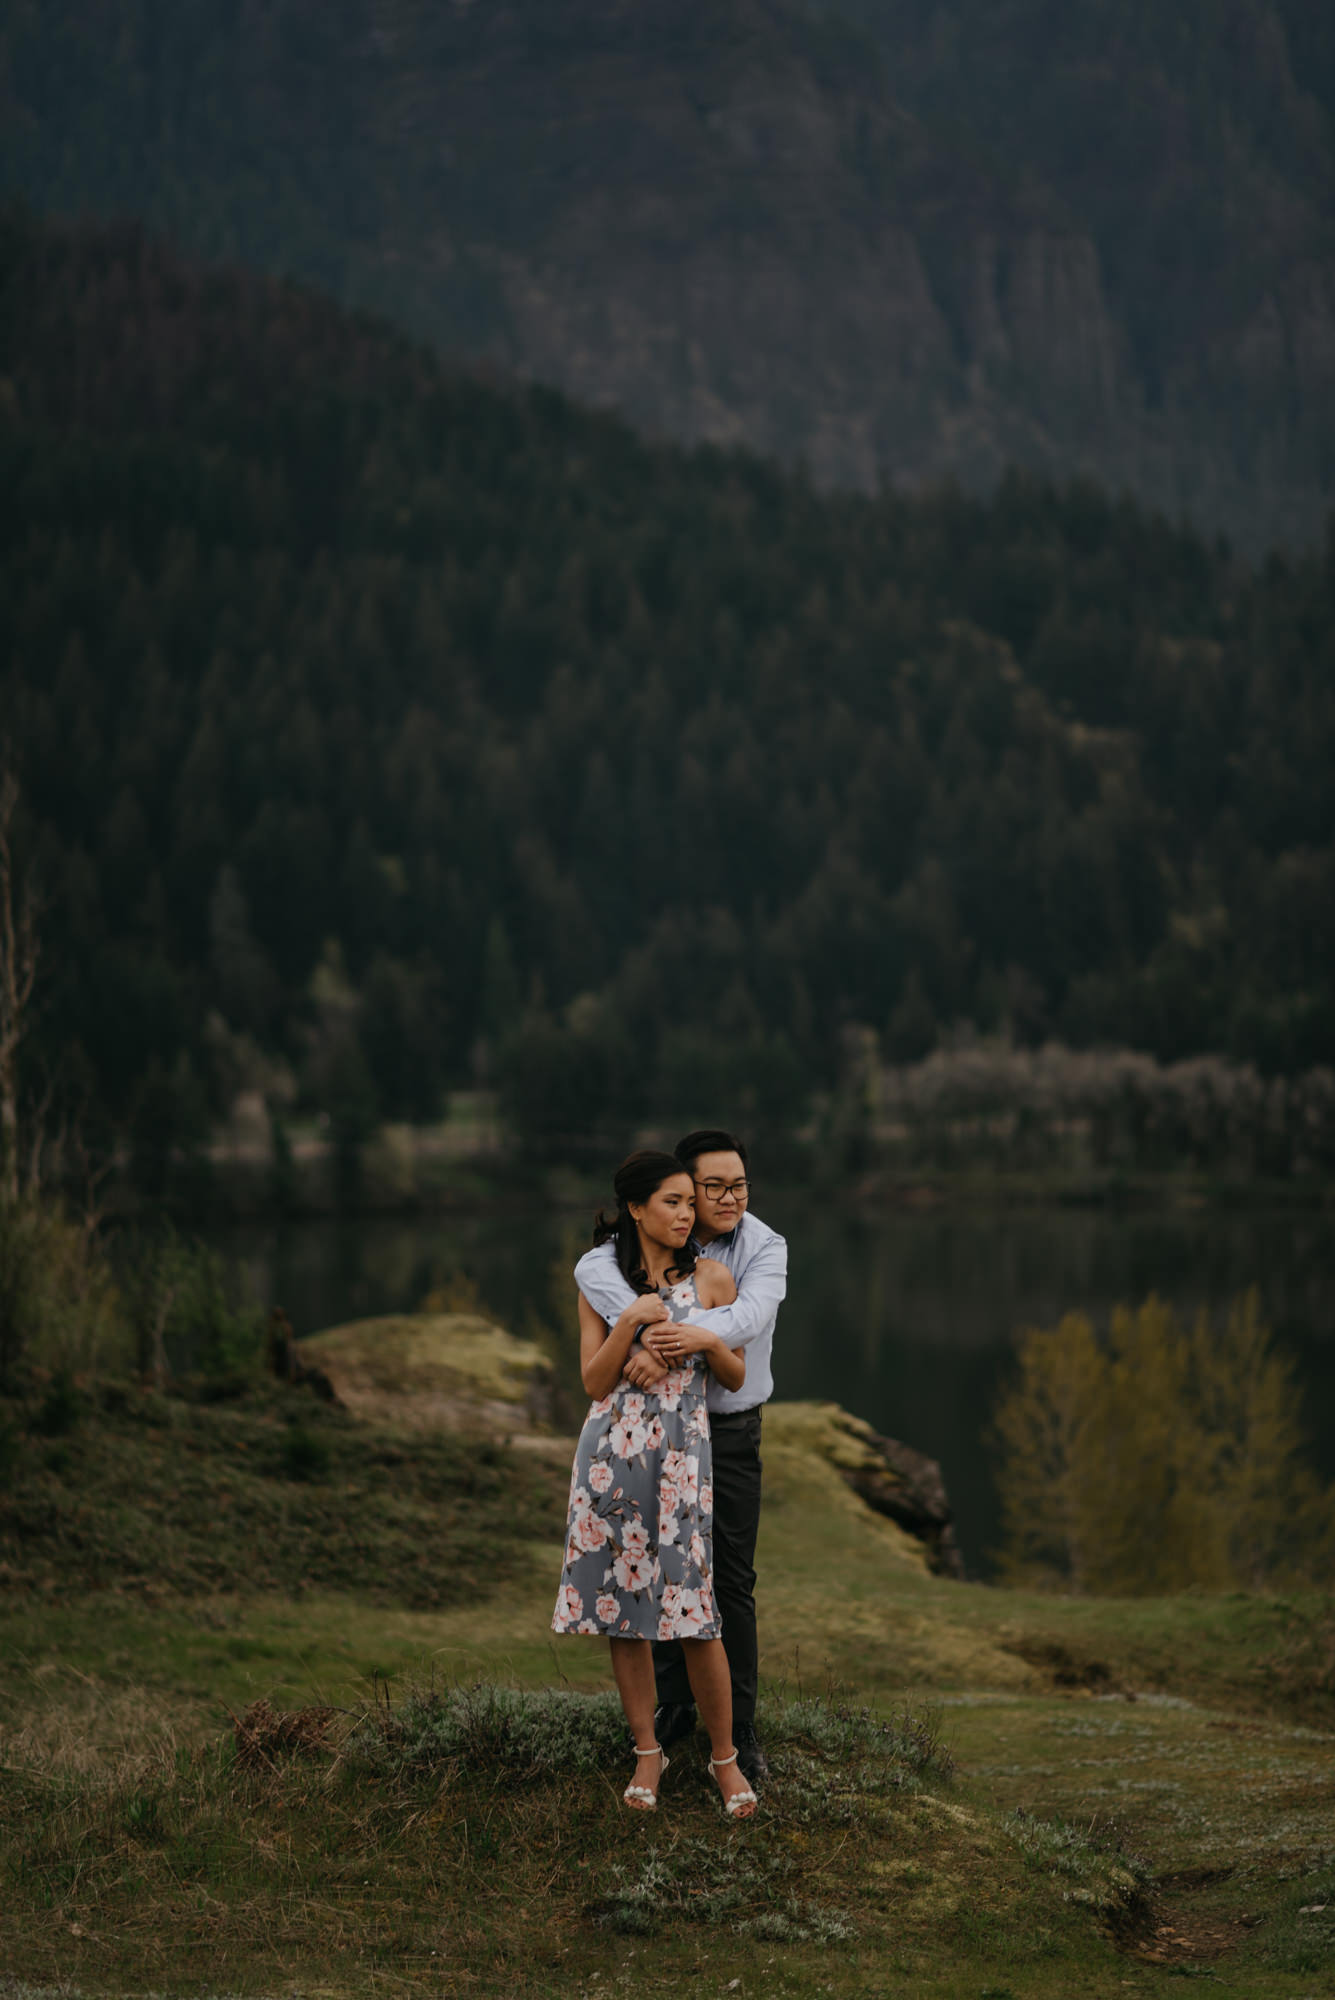 cascade-locks-engagement-cloudy-fun-sunset-4454.jpg